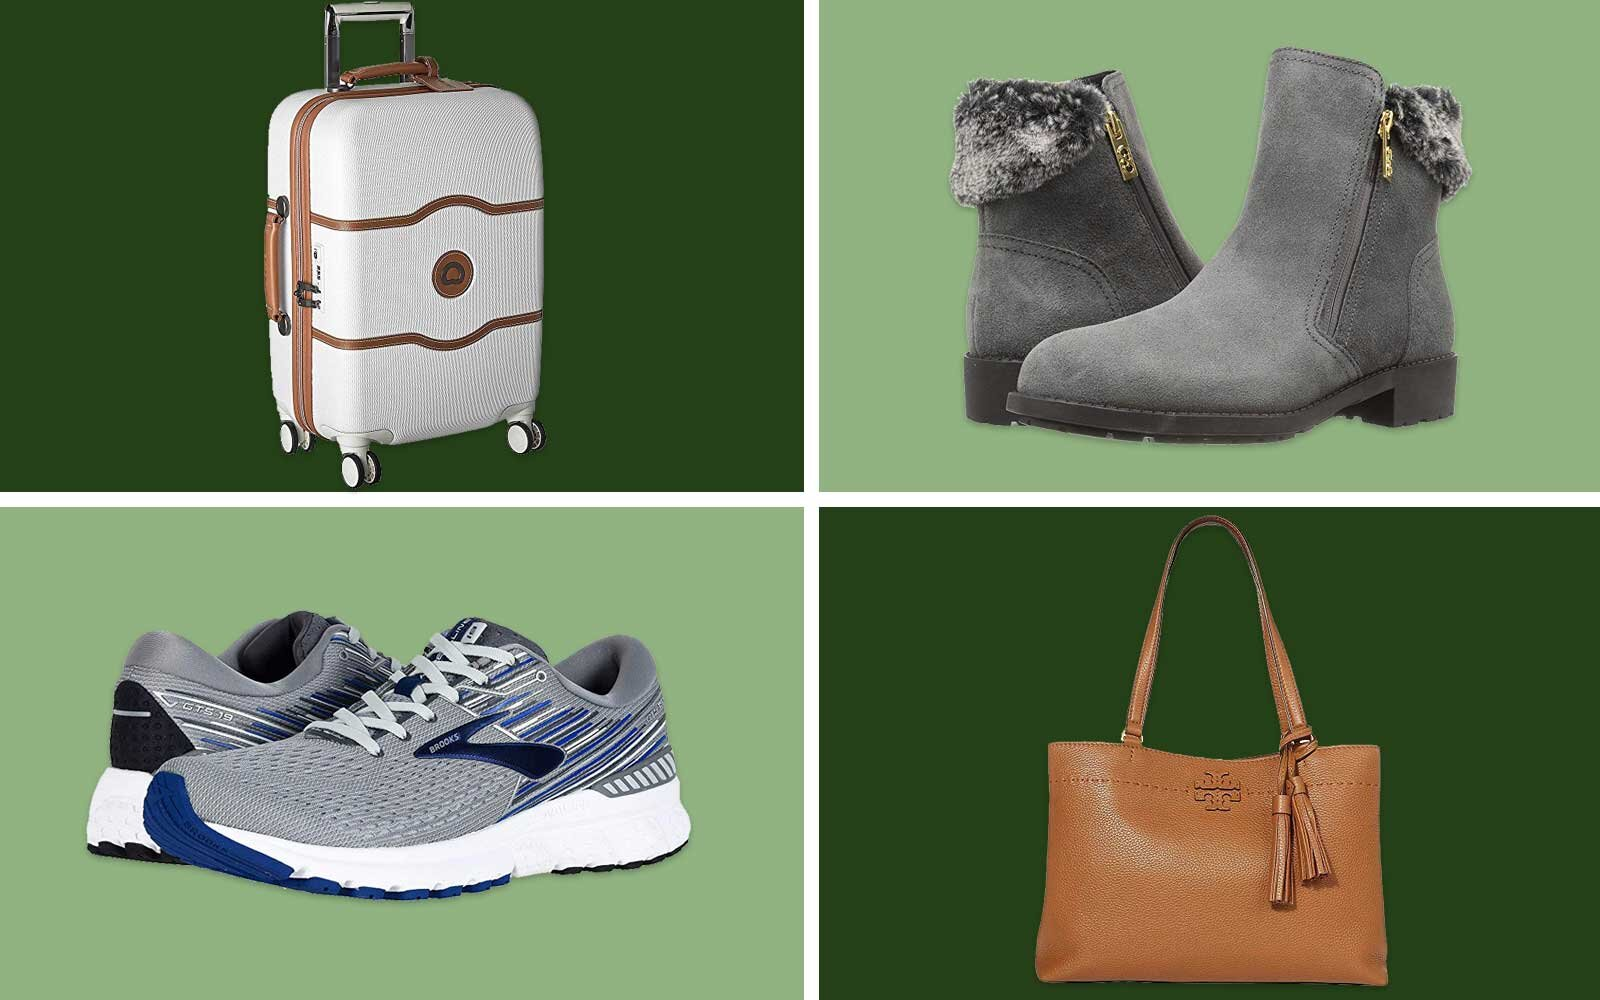 Cyber Monday Here Are The Best Shoe And Luggage Deals To Shop On Zappos Travel Leisure